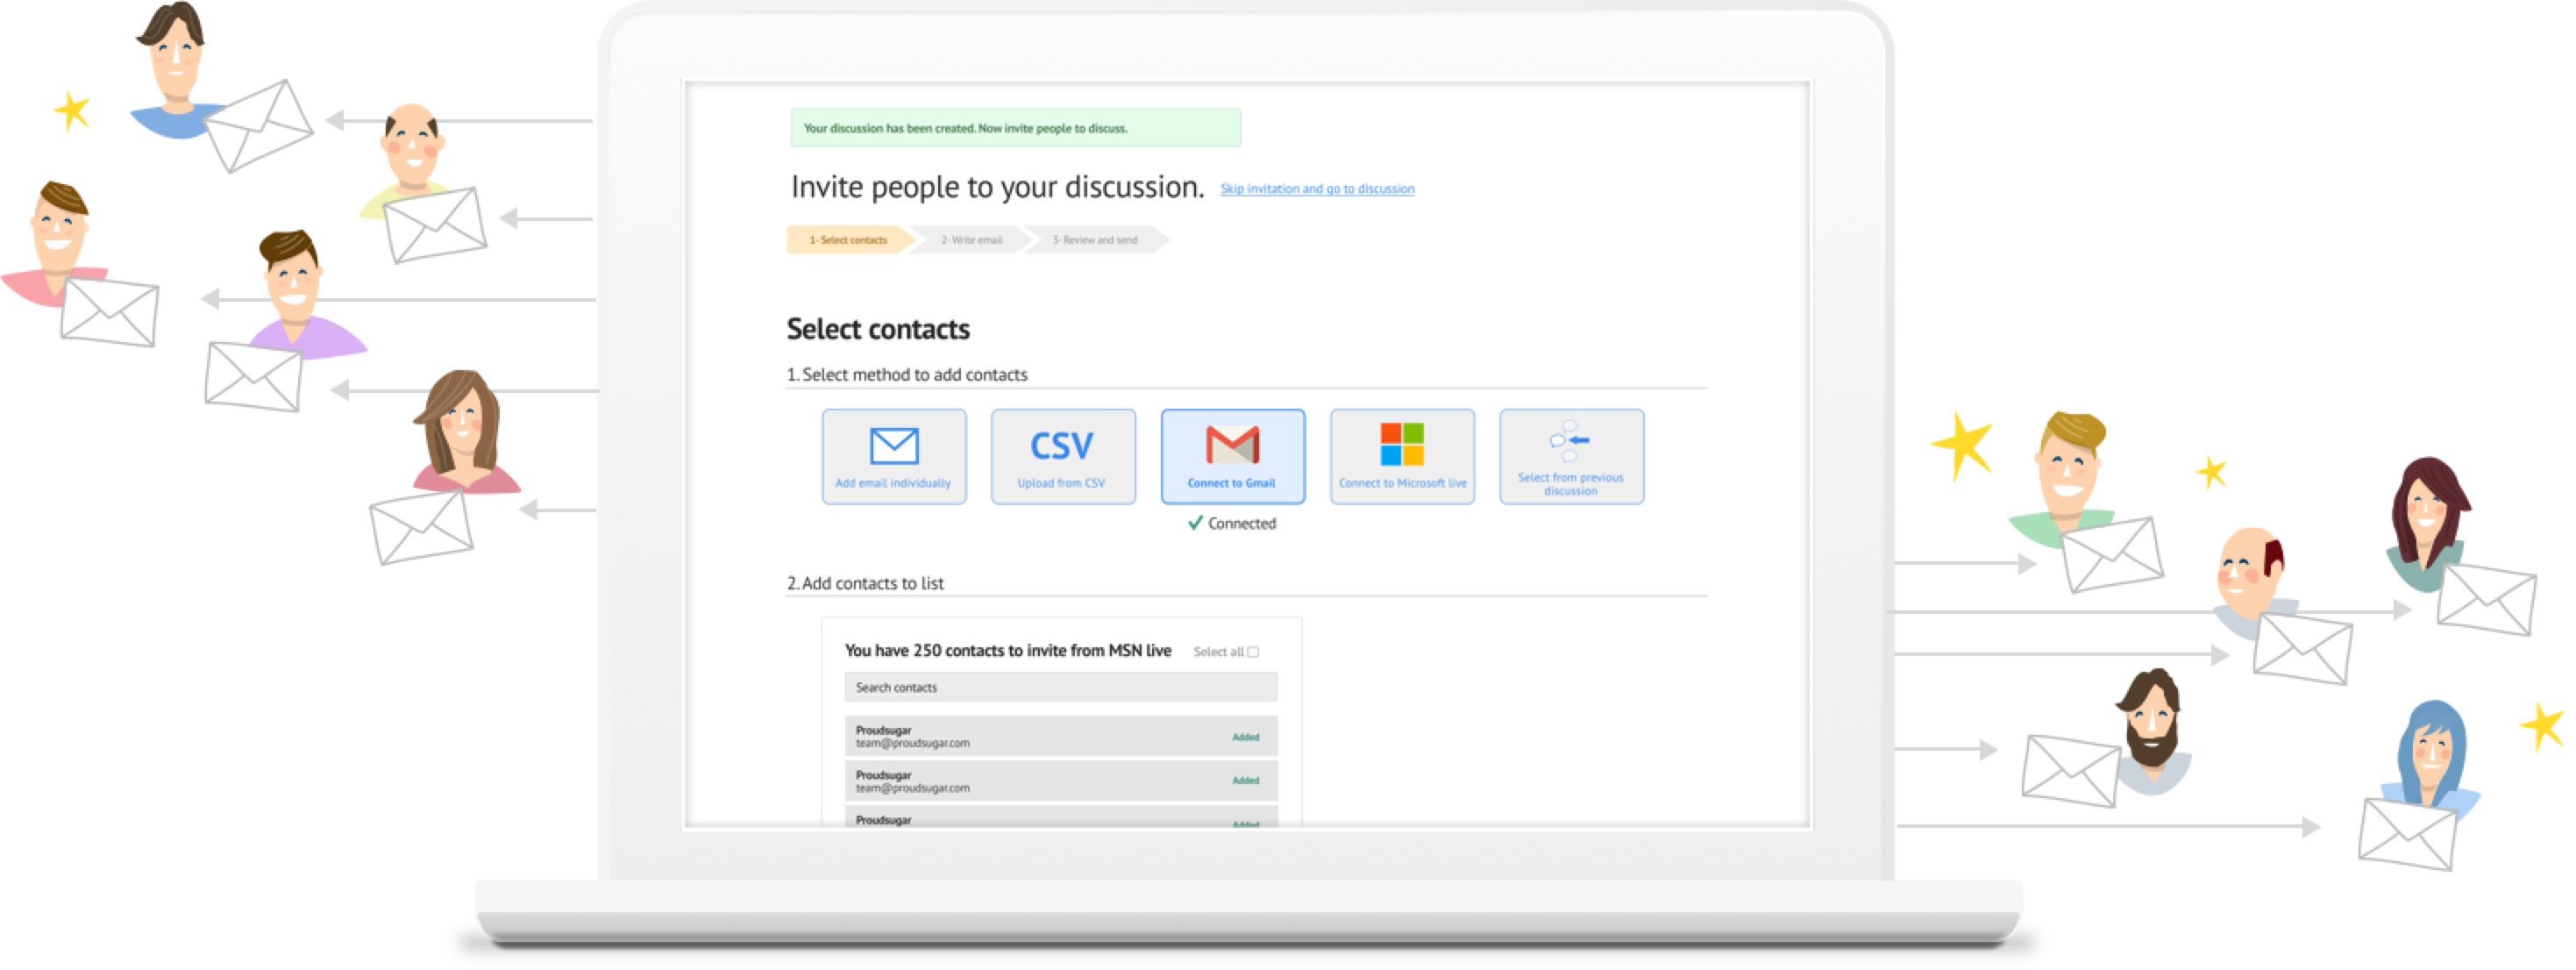 NEW, BETTER DISCUTO IS OUT: +30 NEW FEATURES FOR BETTER